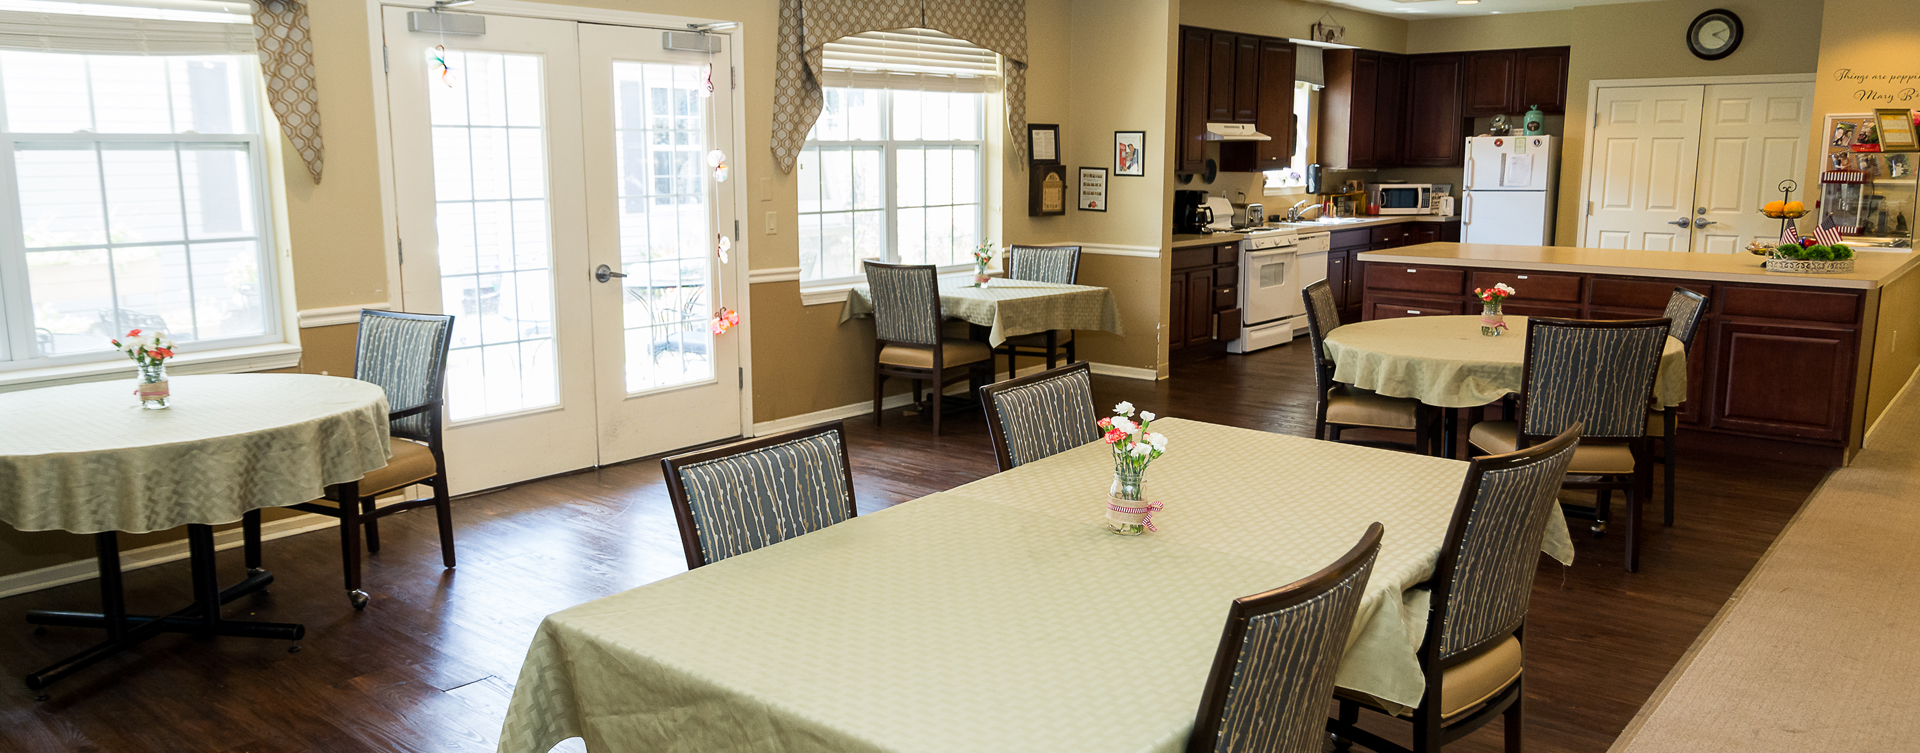 Mary B's country kitchen evokes a sense of home and reconnects residents to past life skills at Bickford of Oswego